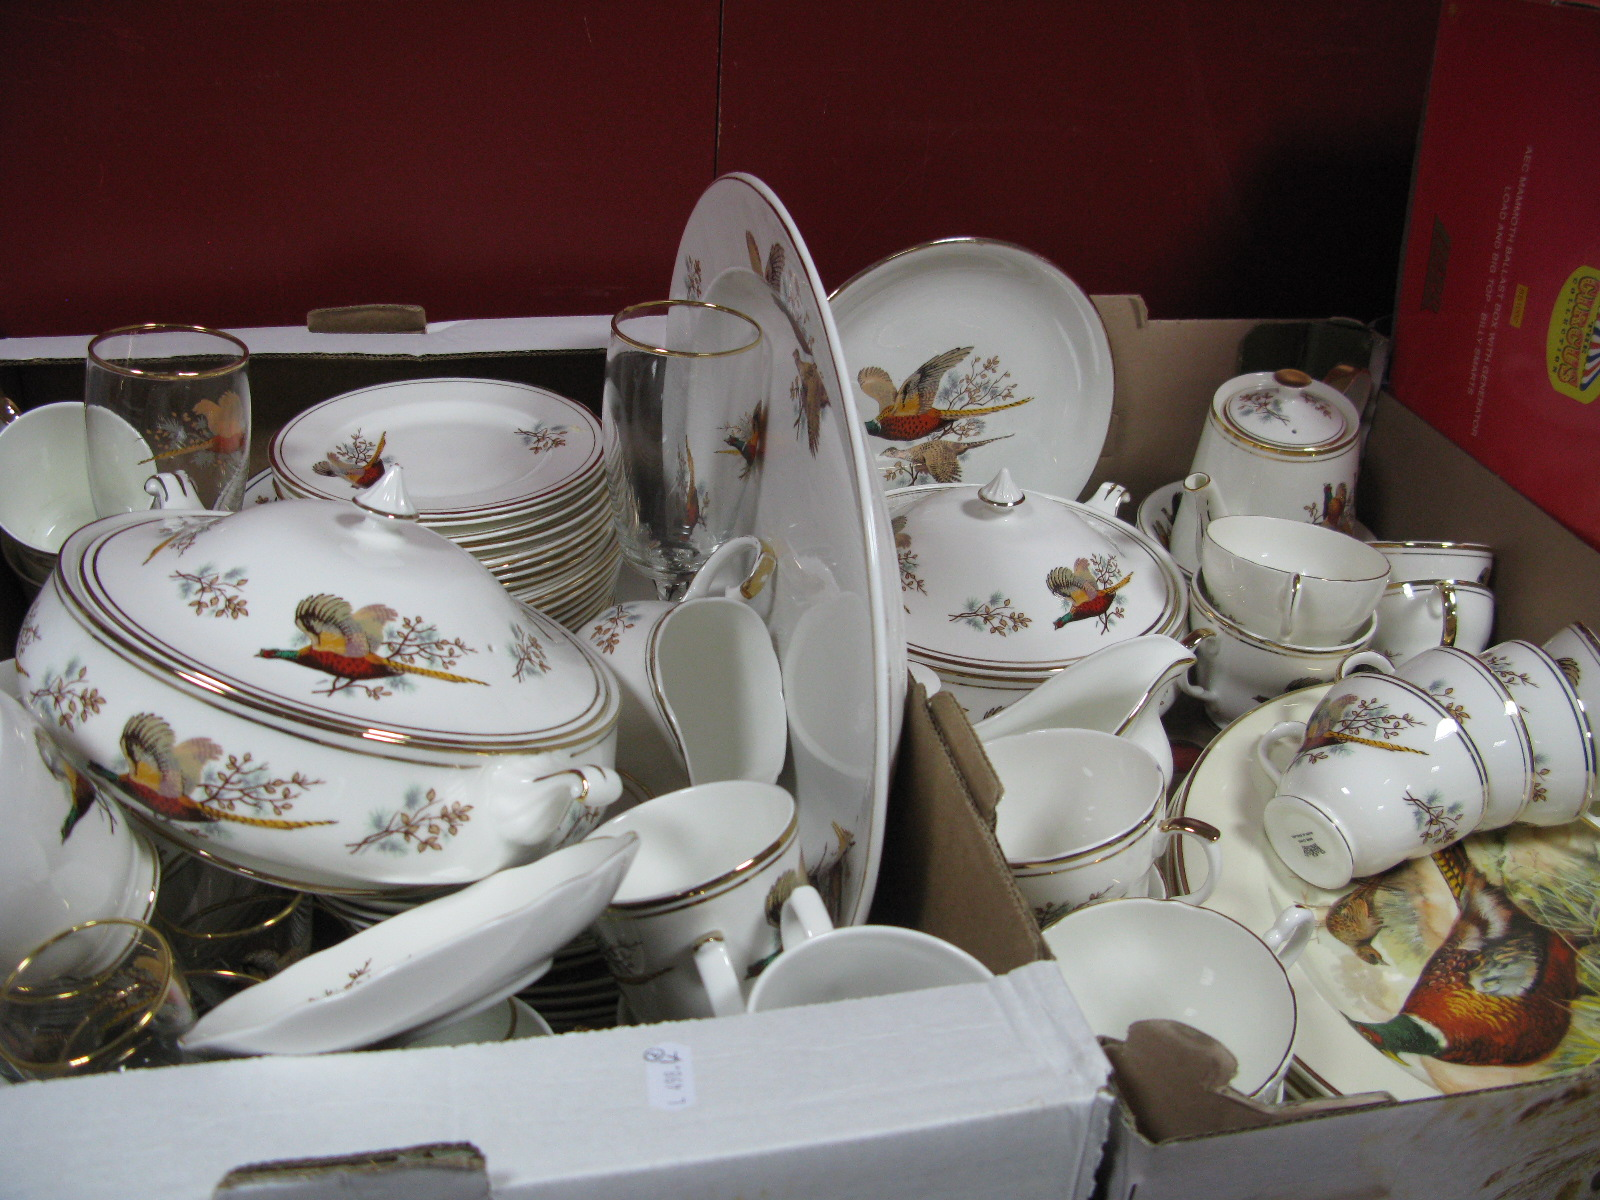 Lot 1010 - A Large Sheridan China Tea and Dinner Service, printed with pheasants on a white ground (